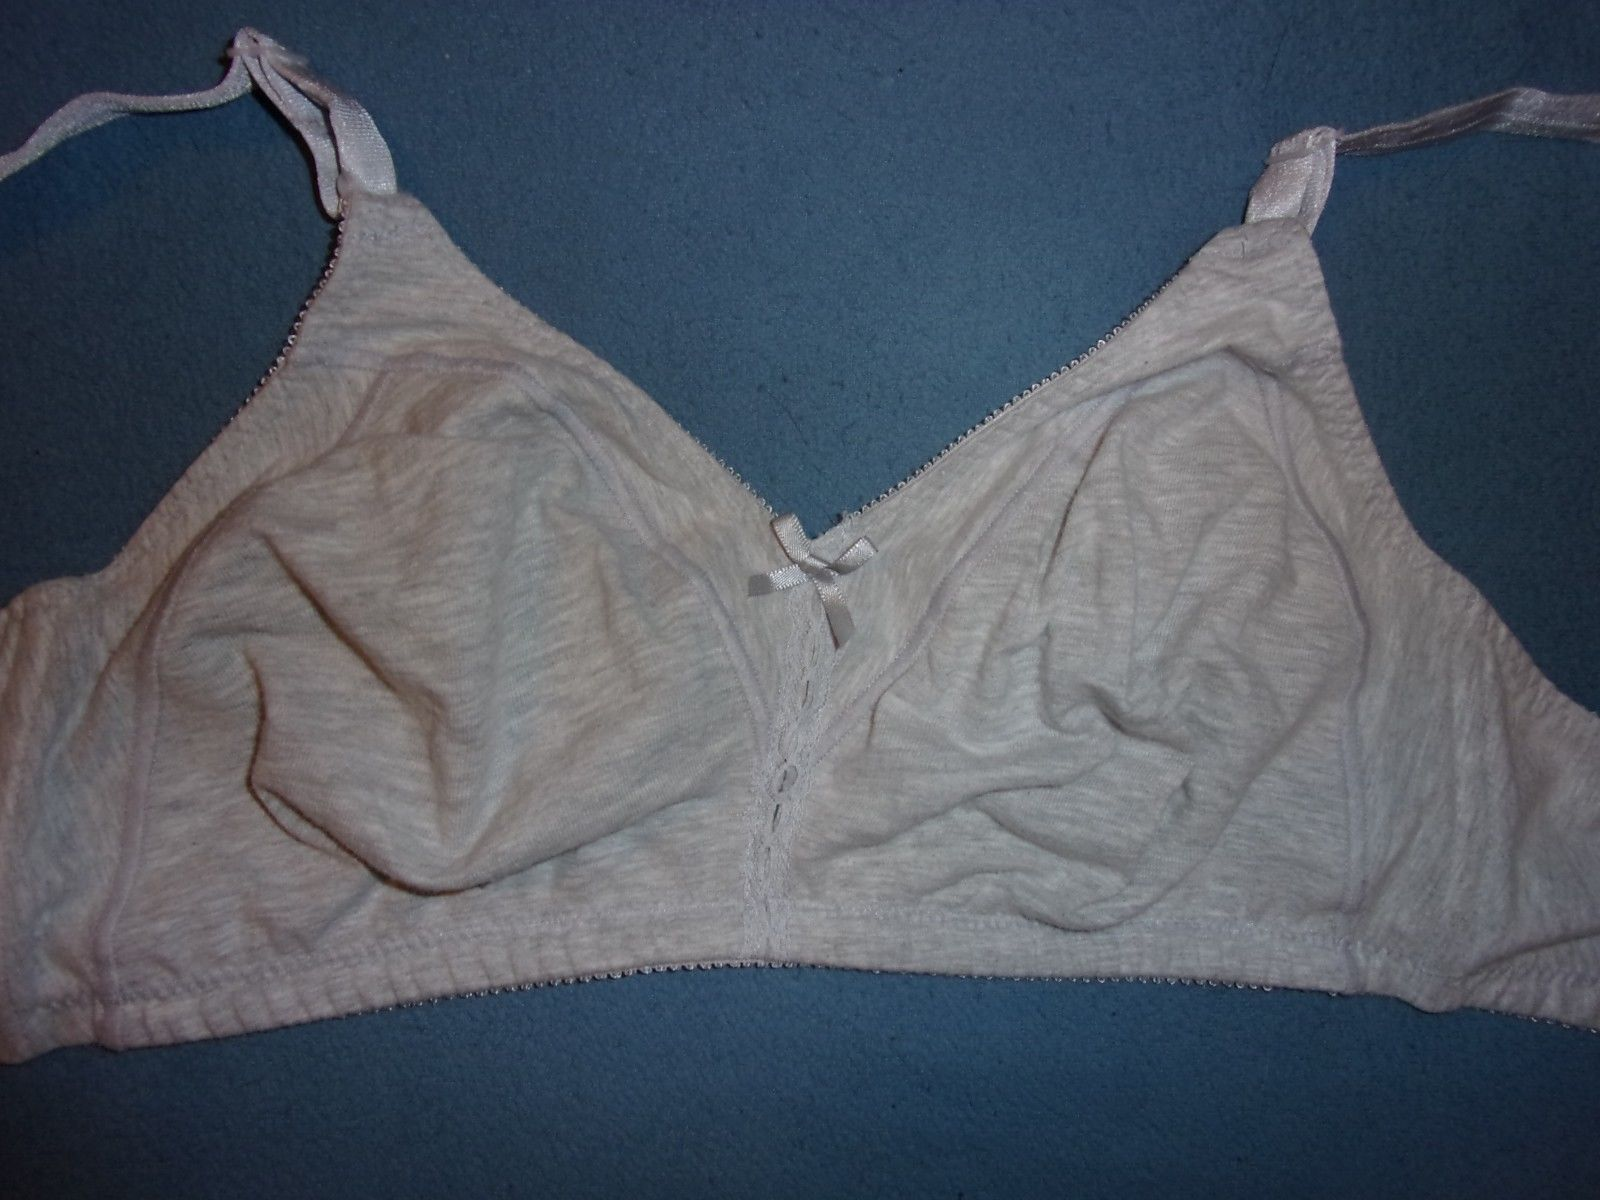 cd8b0bea8c7da 36C NWOT Unbranded Soft Cup Wire Free Full and 50 similar items